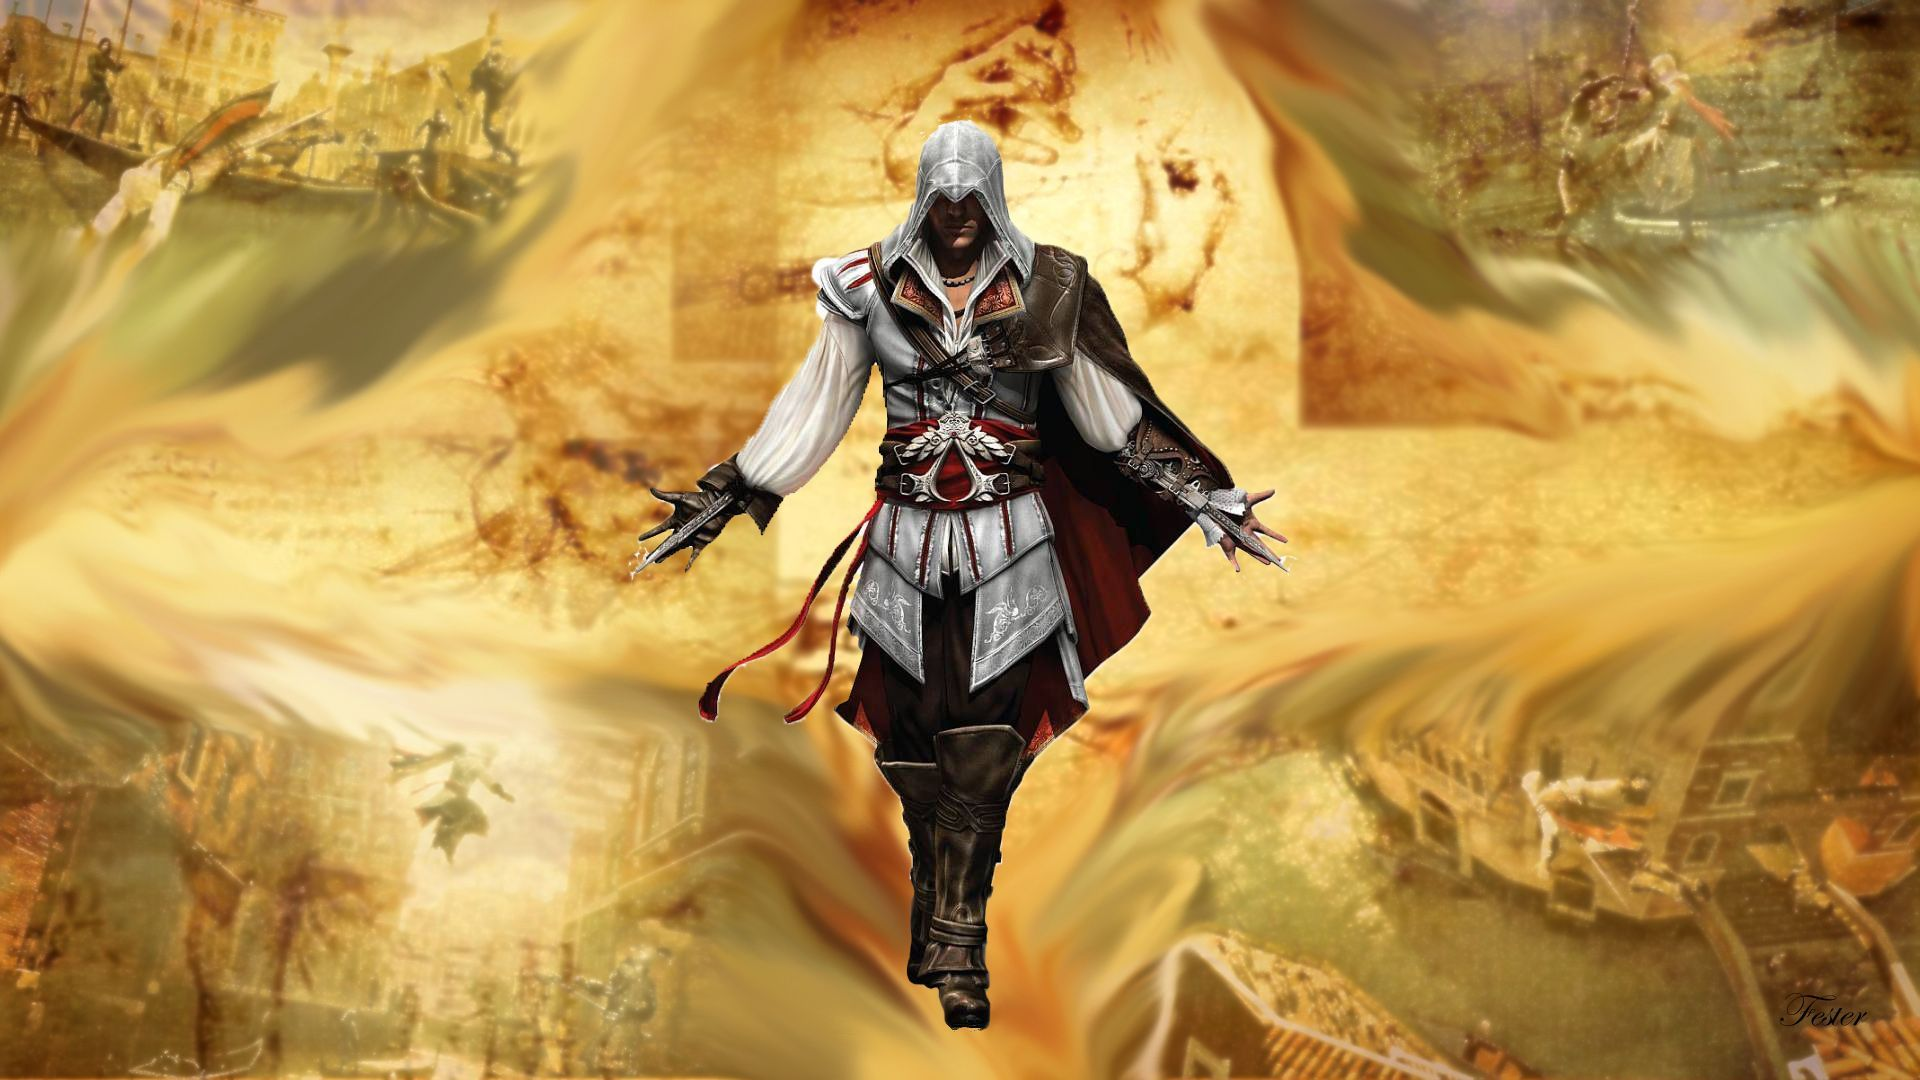 Assassin's Creed Ii Wallpaper, Assassins 2 Altair